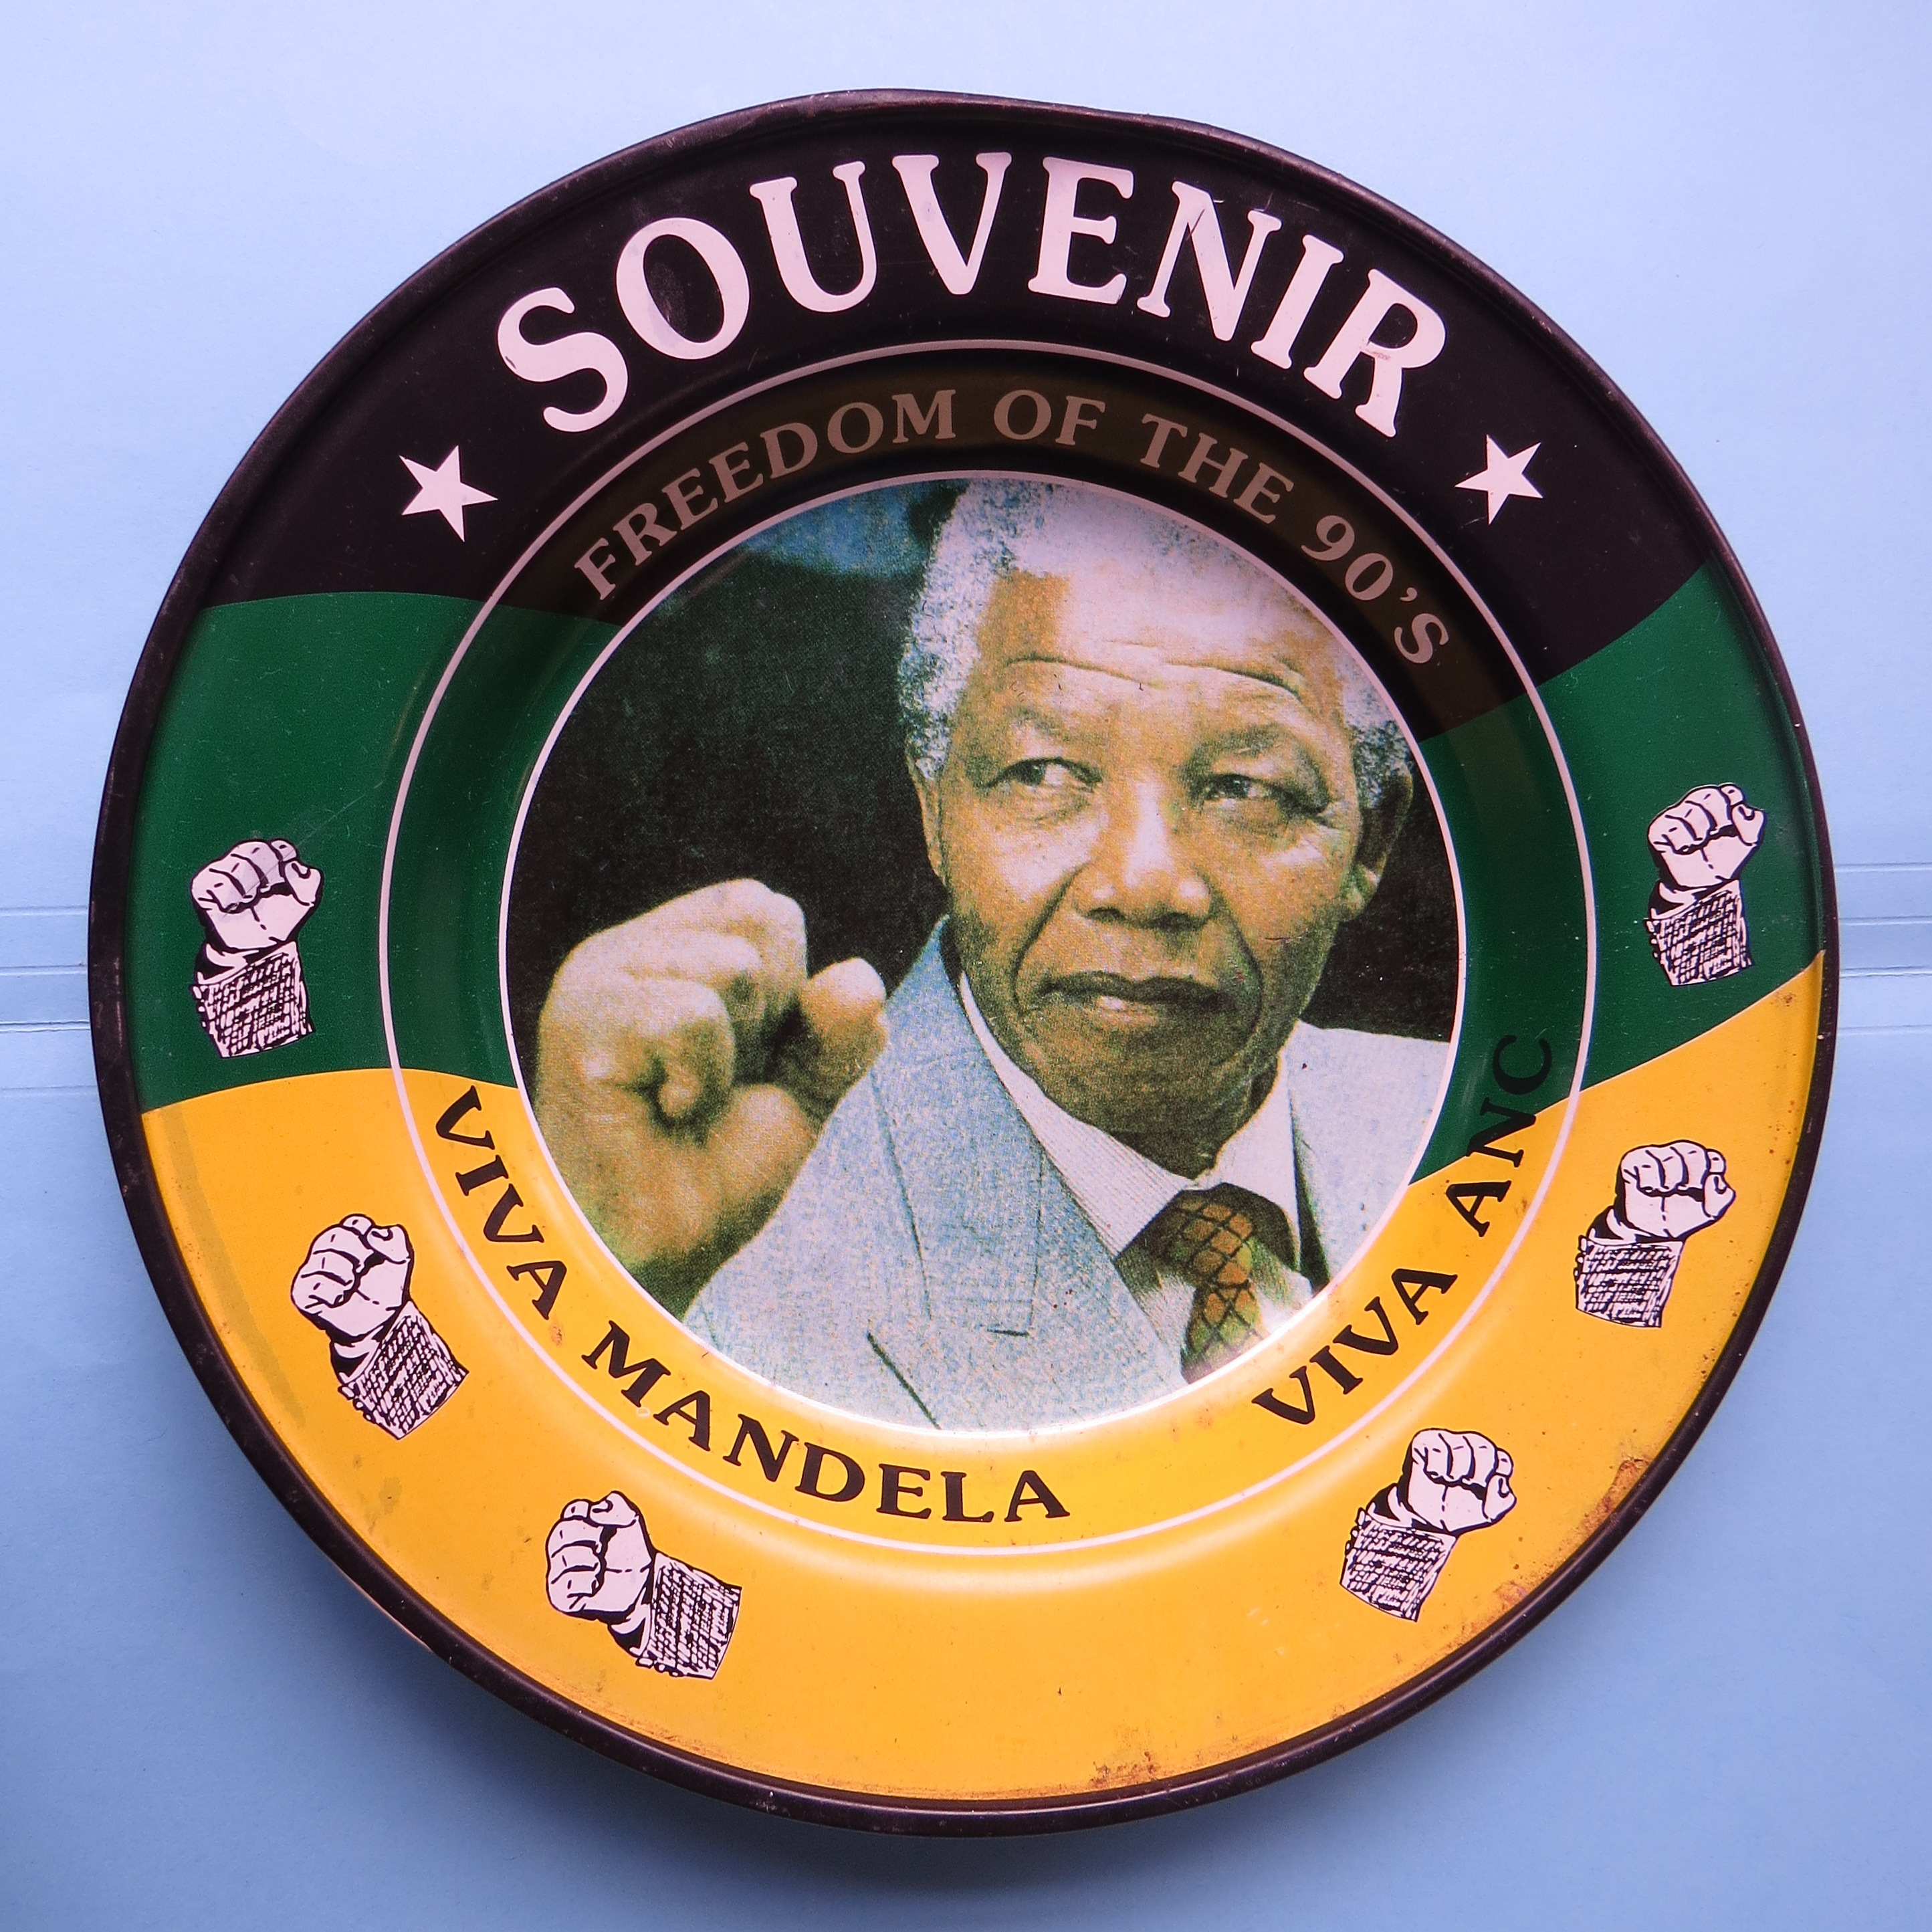 Commemorative tin plate sold by street vendors at Mandela's 1994 presidential inauguration